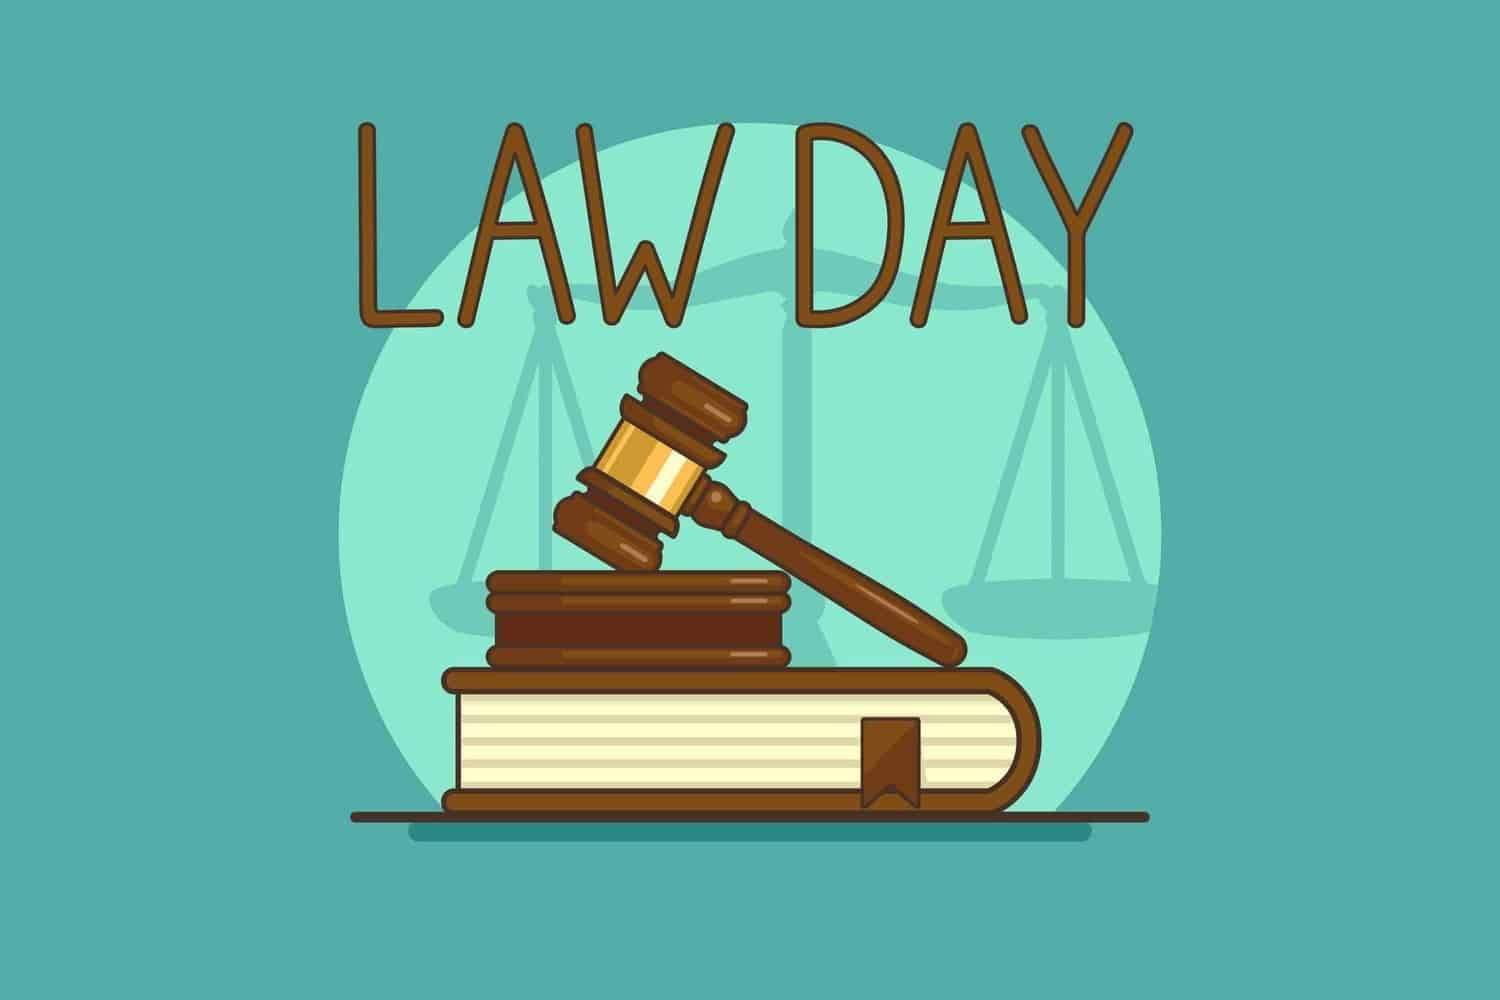 A Law Day sign above a judge's gavel and a book.